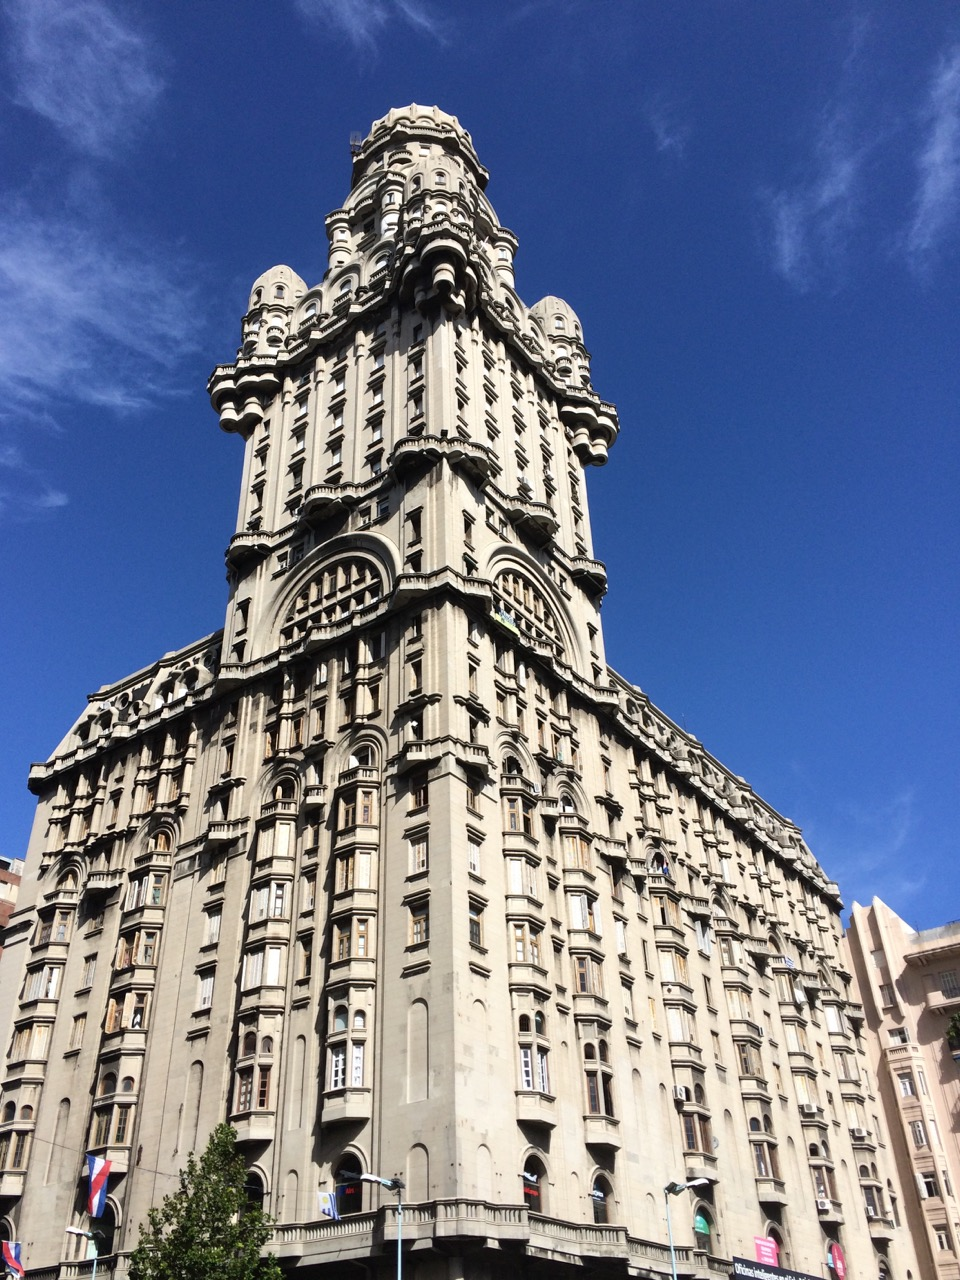 Palacio Salvo is the iconic landmark of Montevideo